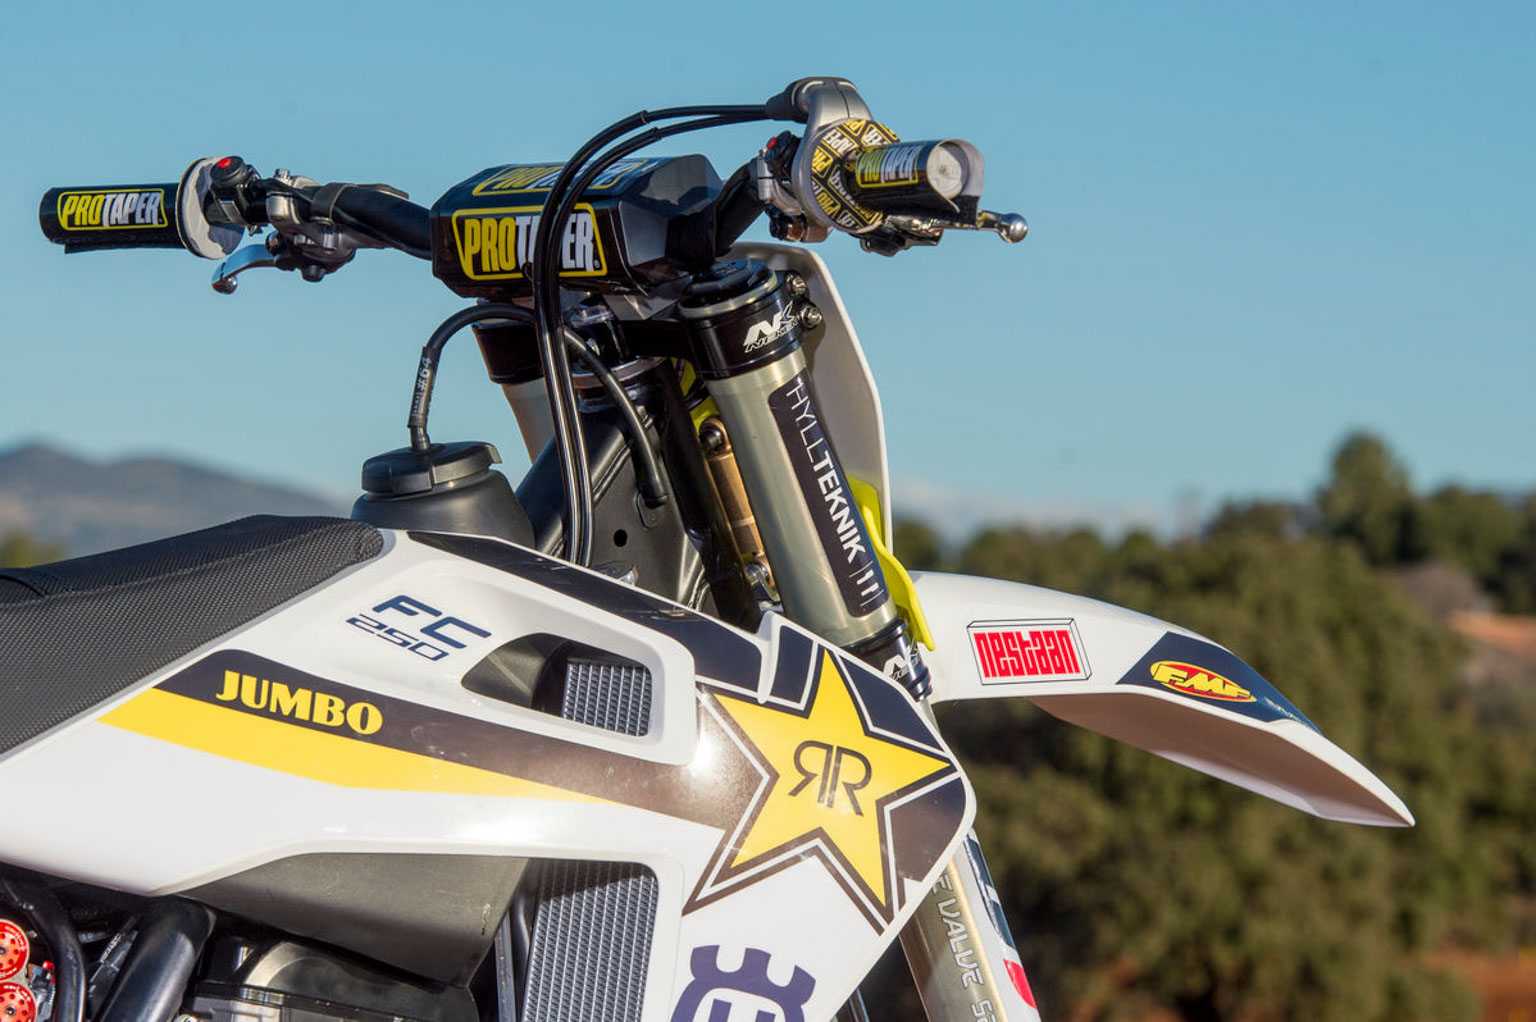 42435_Parts_Rockstar Energy Husqvarna MX2 Factory Racing_shotbybavo_21